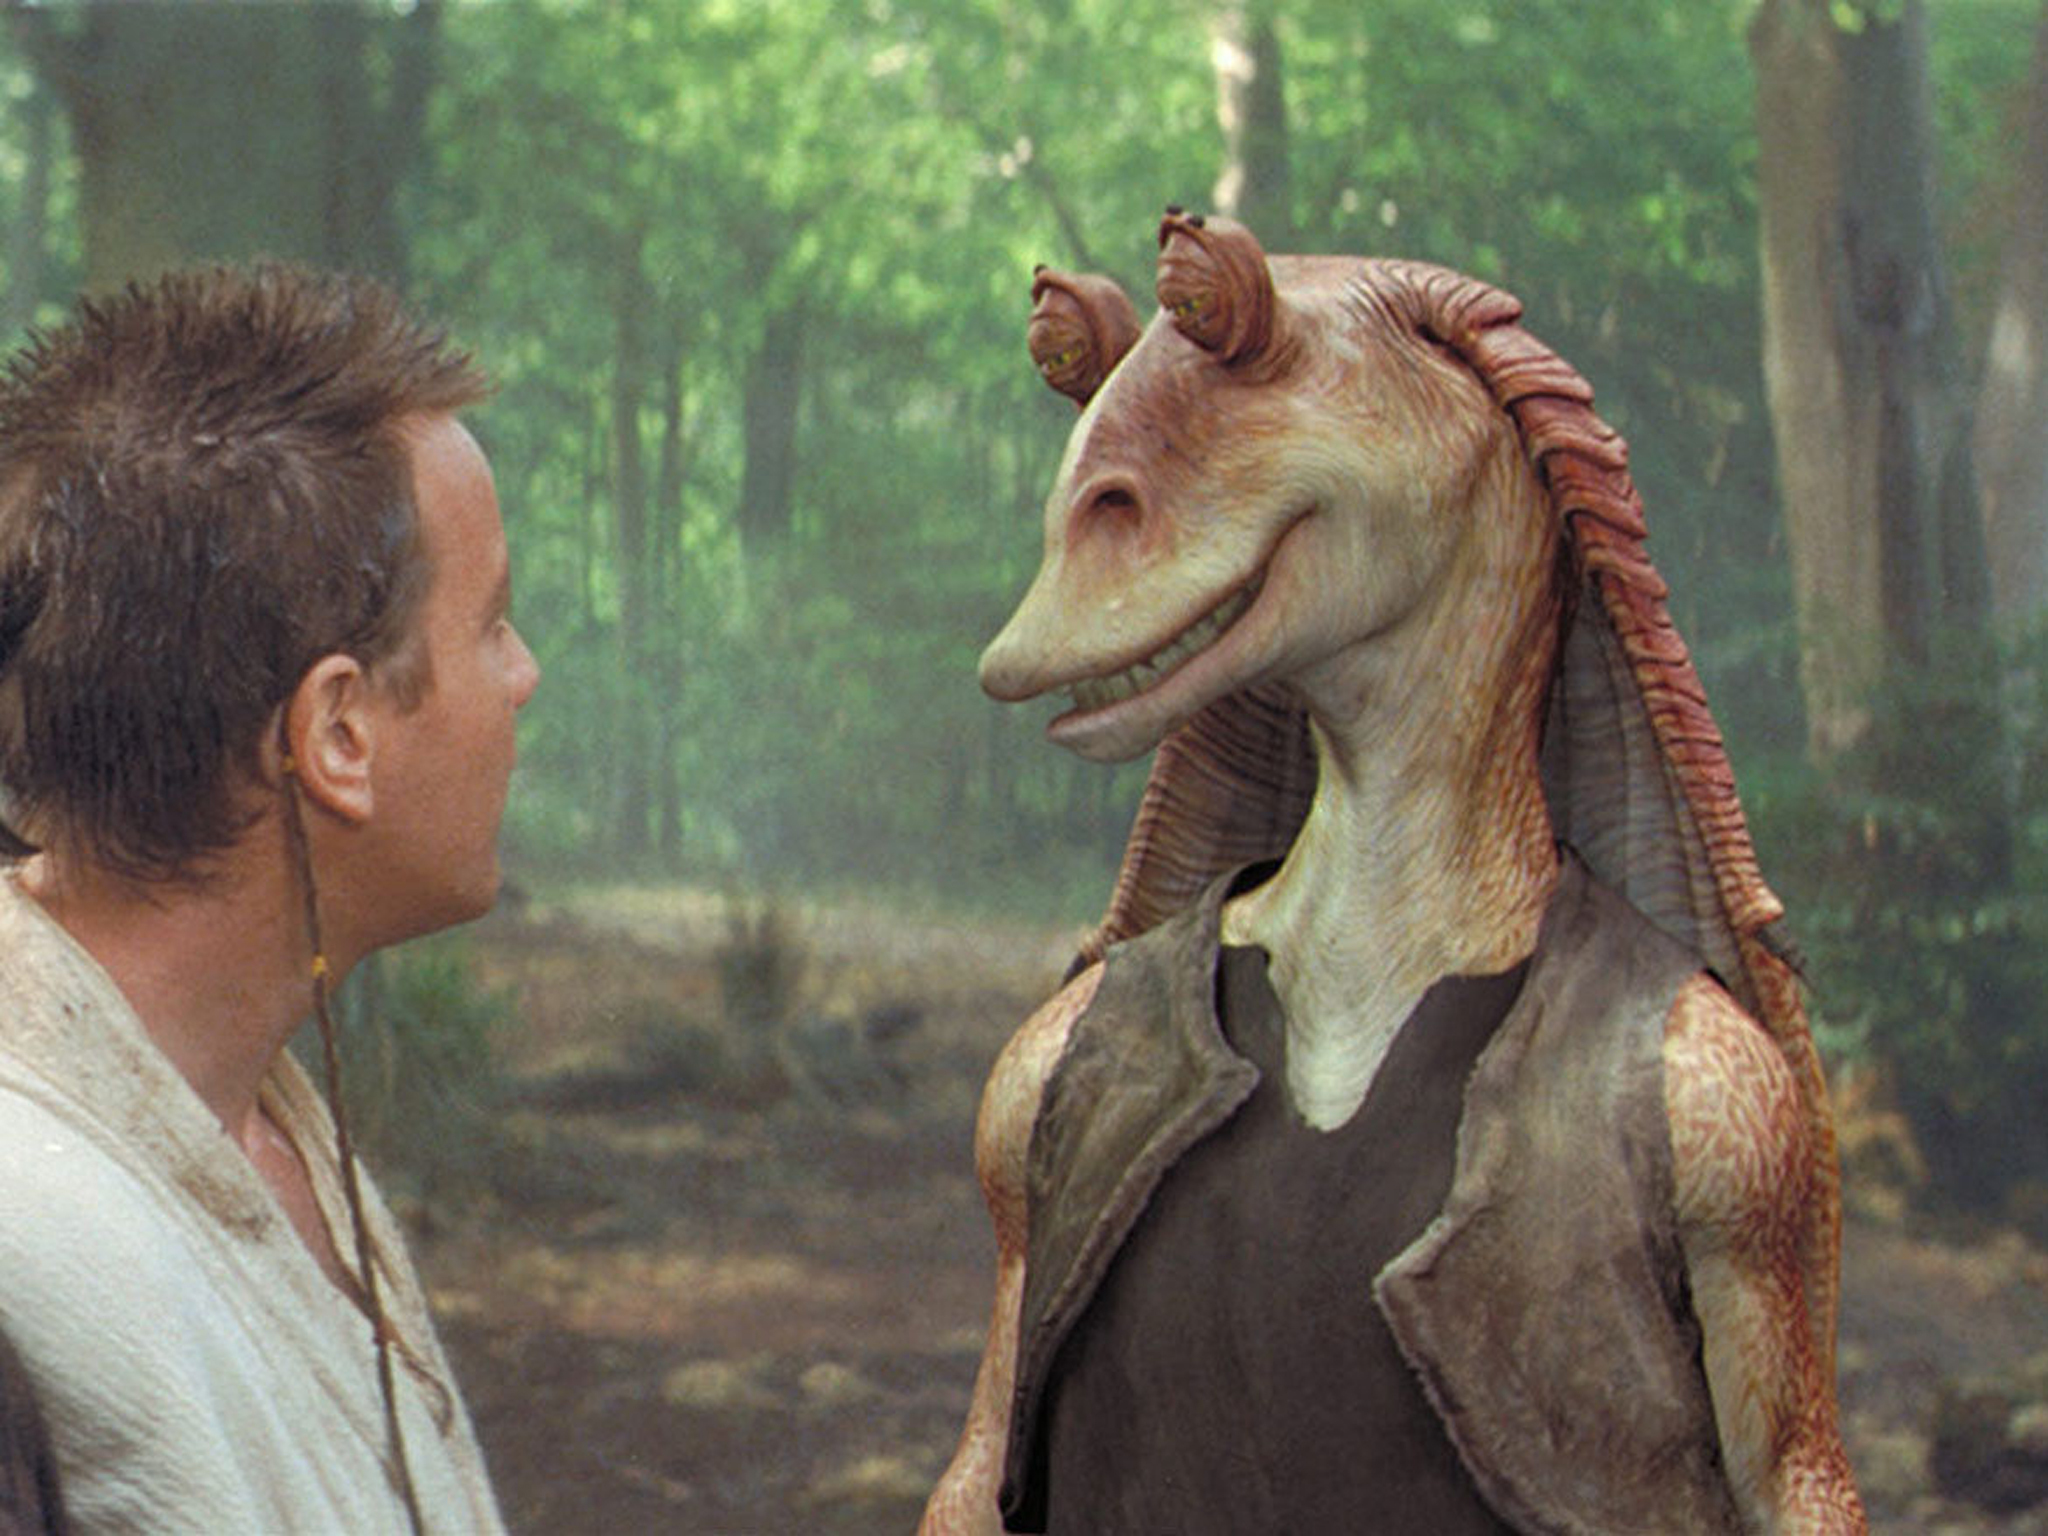 star wars - phantom menace, jar jar binks and obi wan kenobi